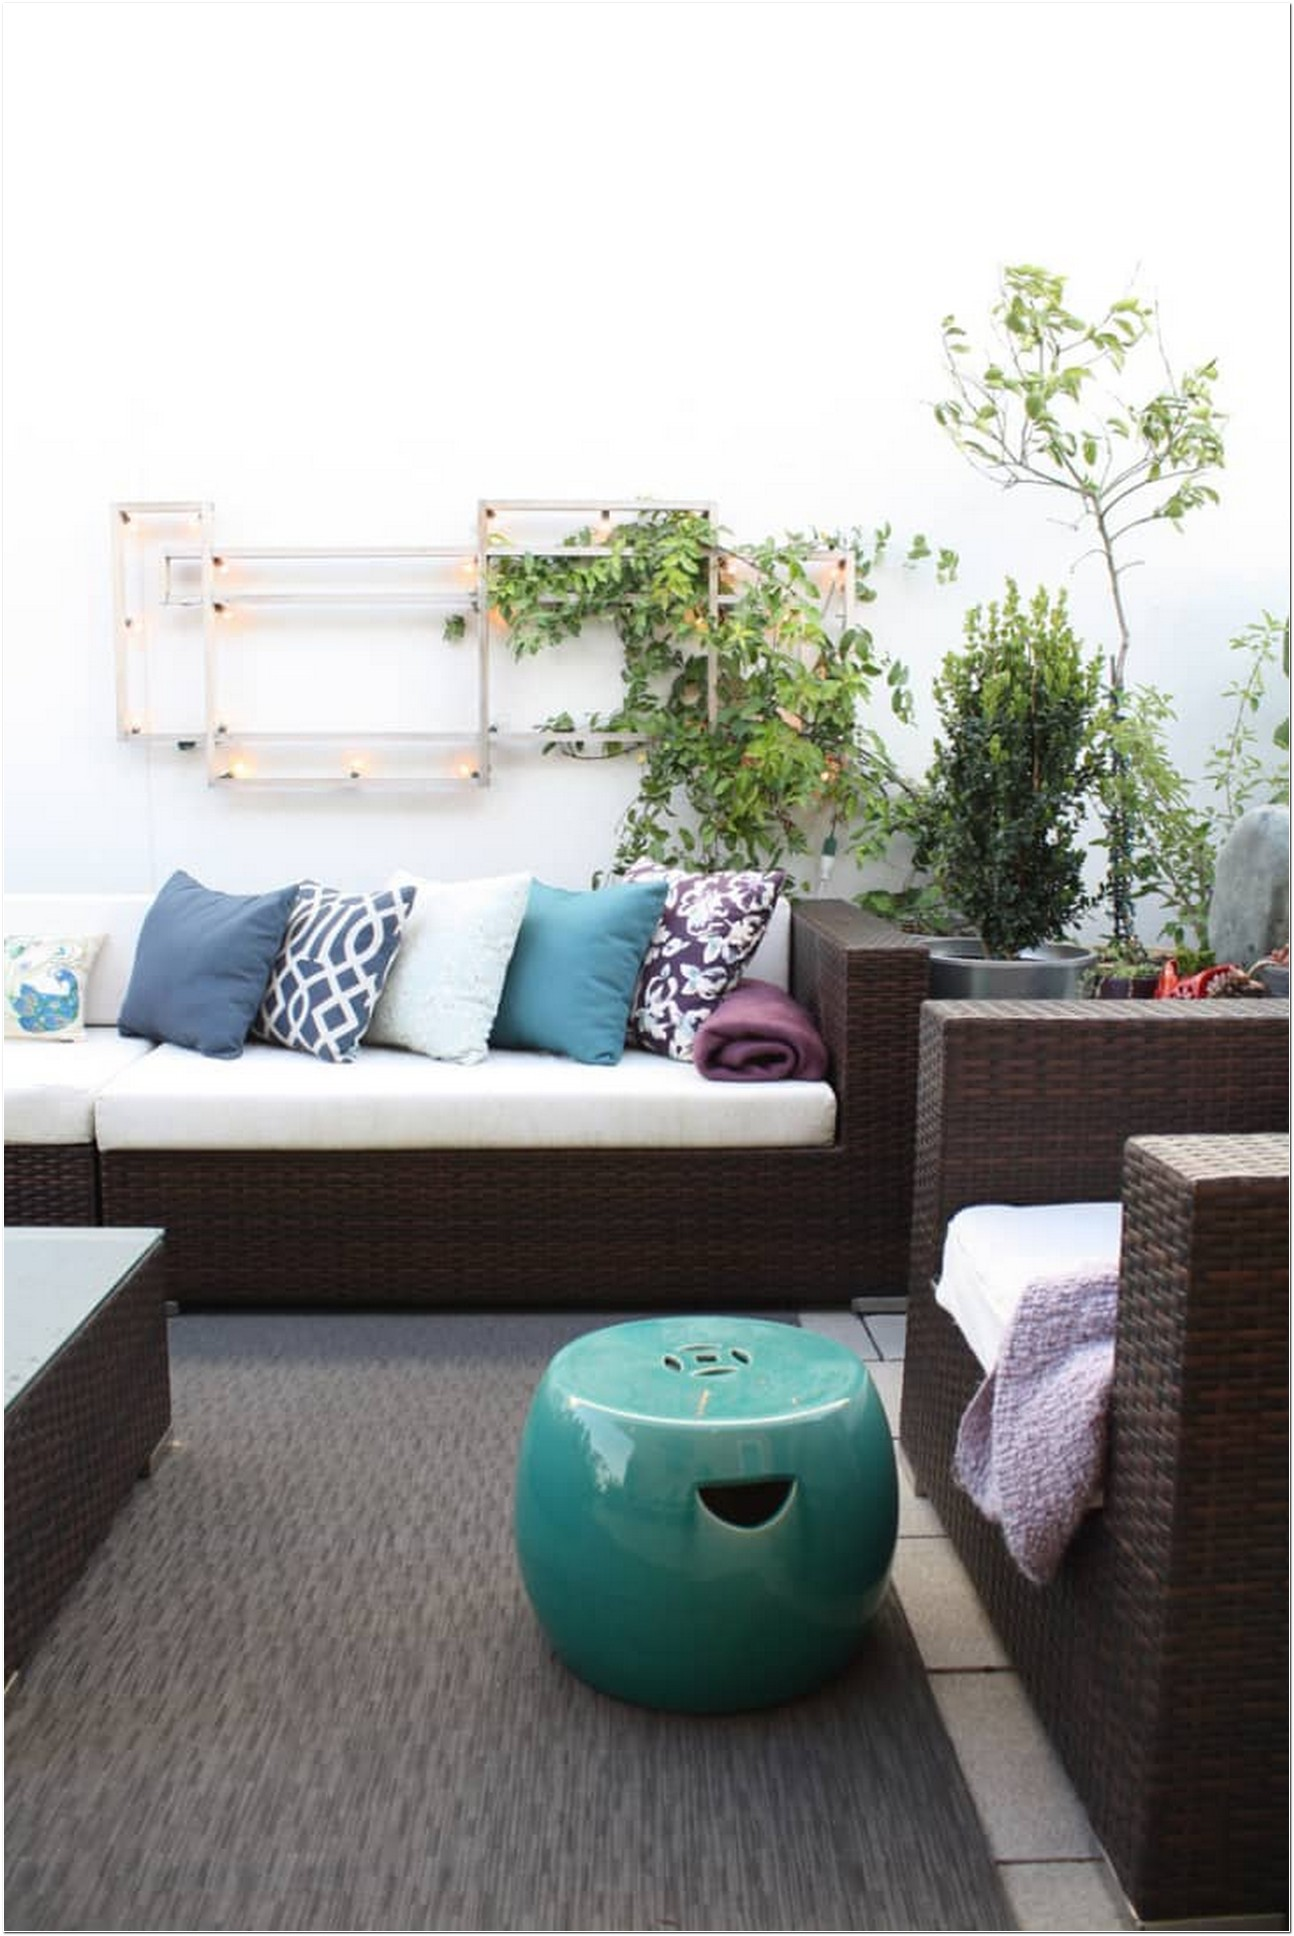 Apartment Patio Ideas To Make Small Space Outdoor Living Captivating